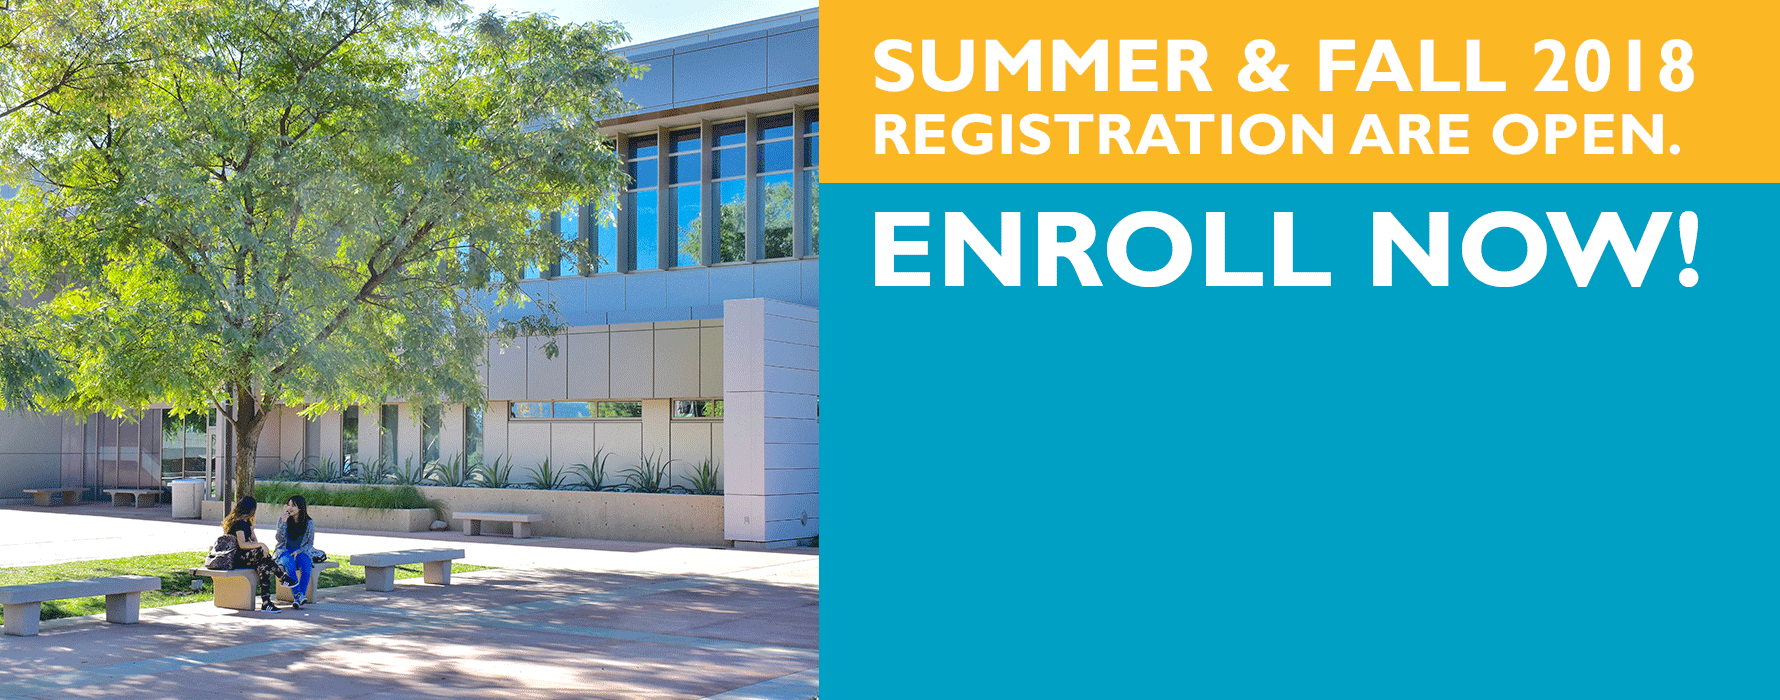 Summer and Fall 2018 Registration now open!